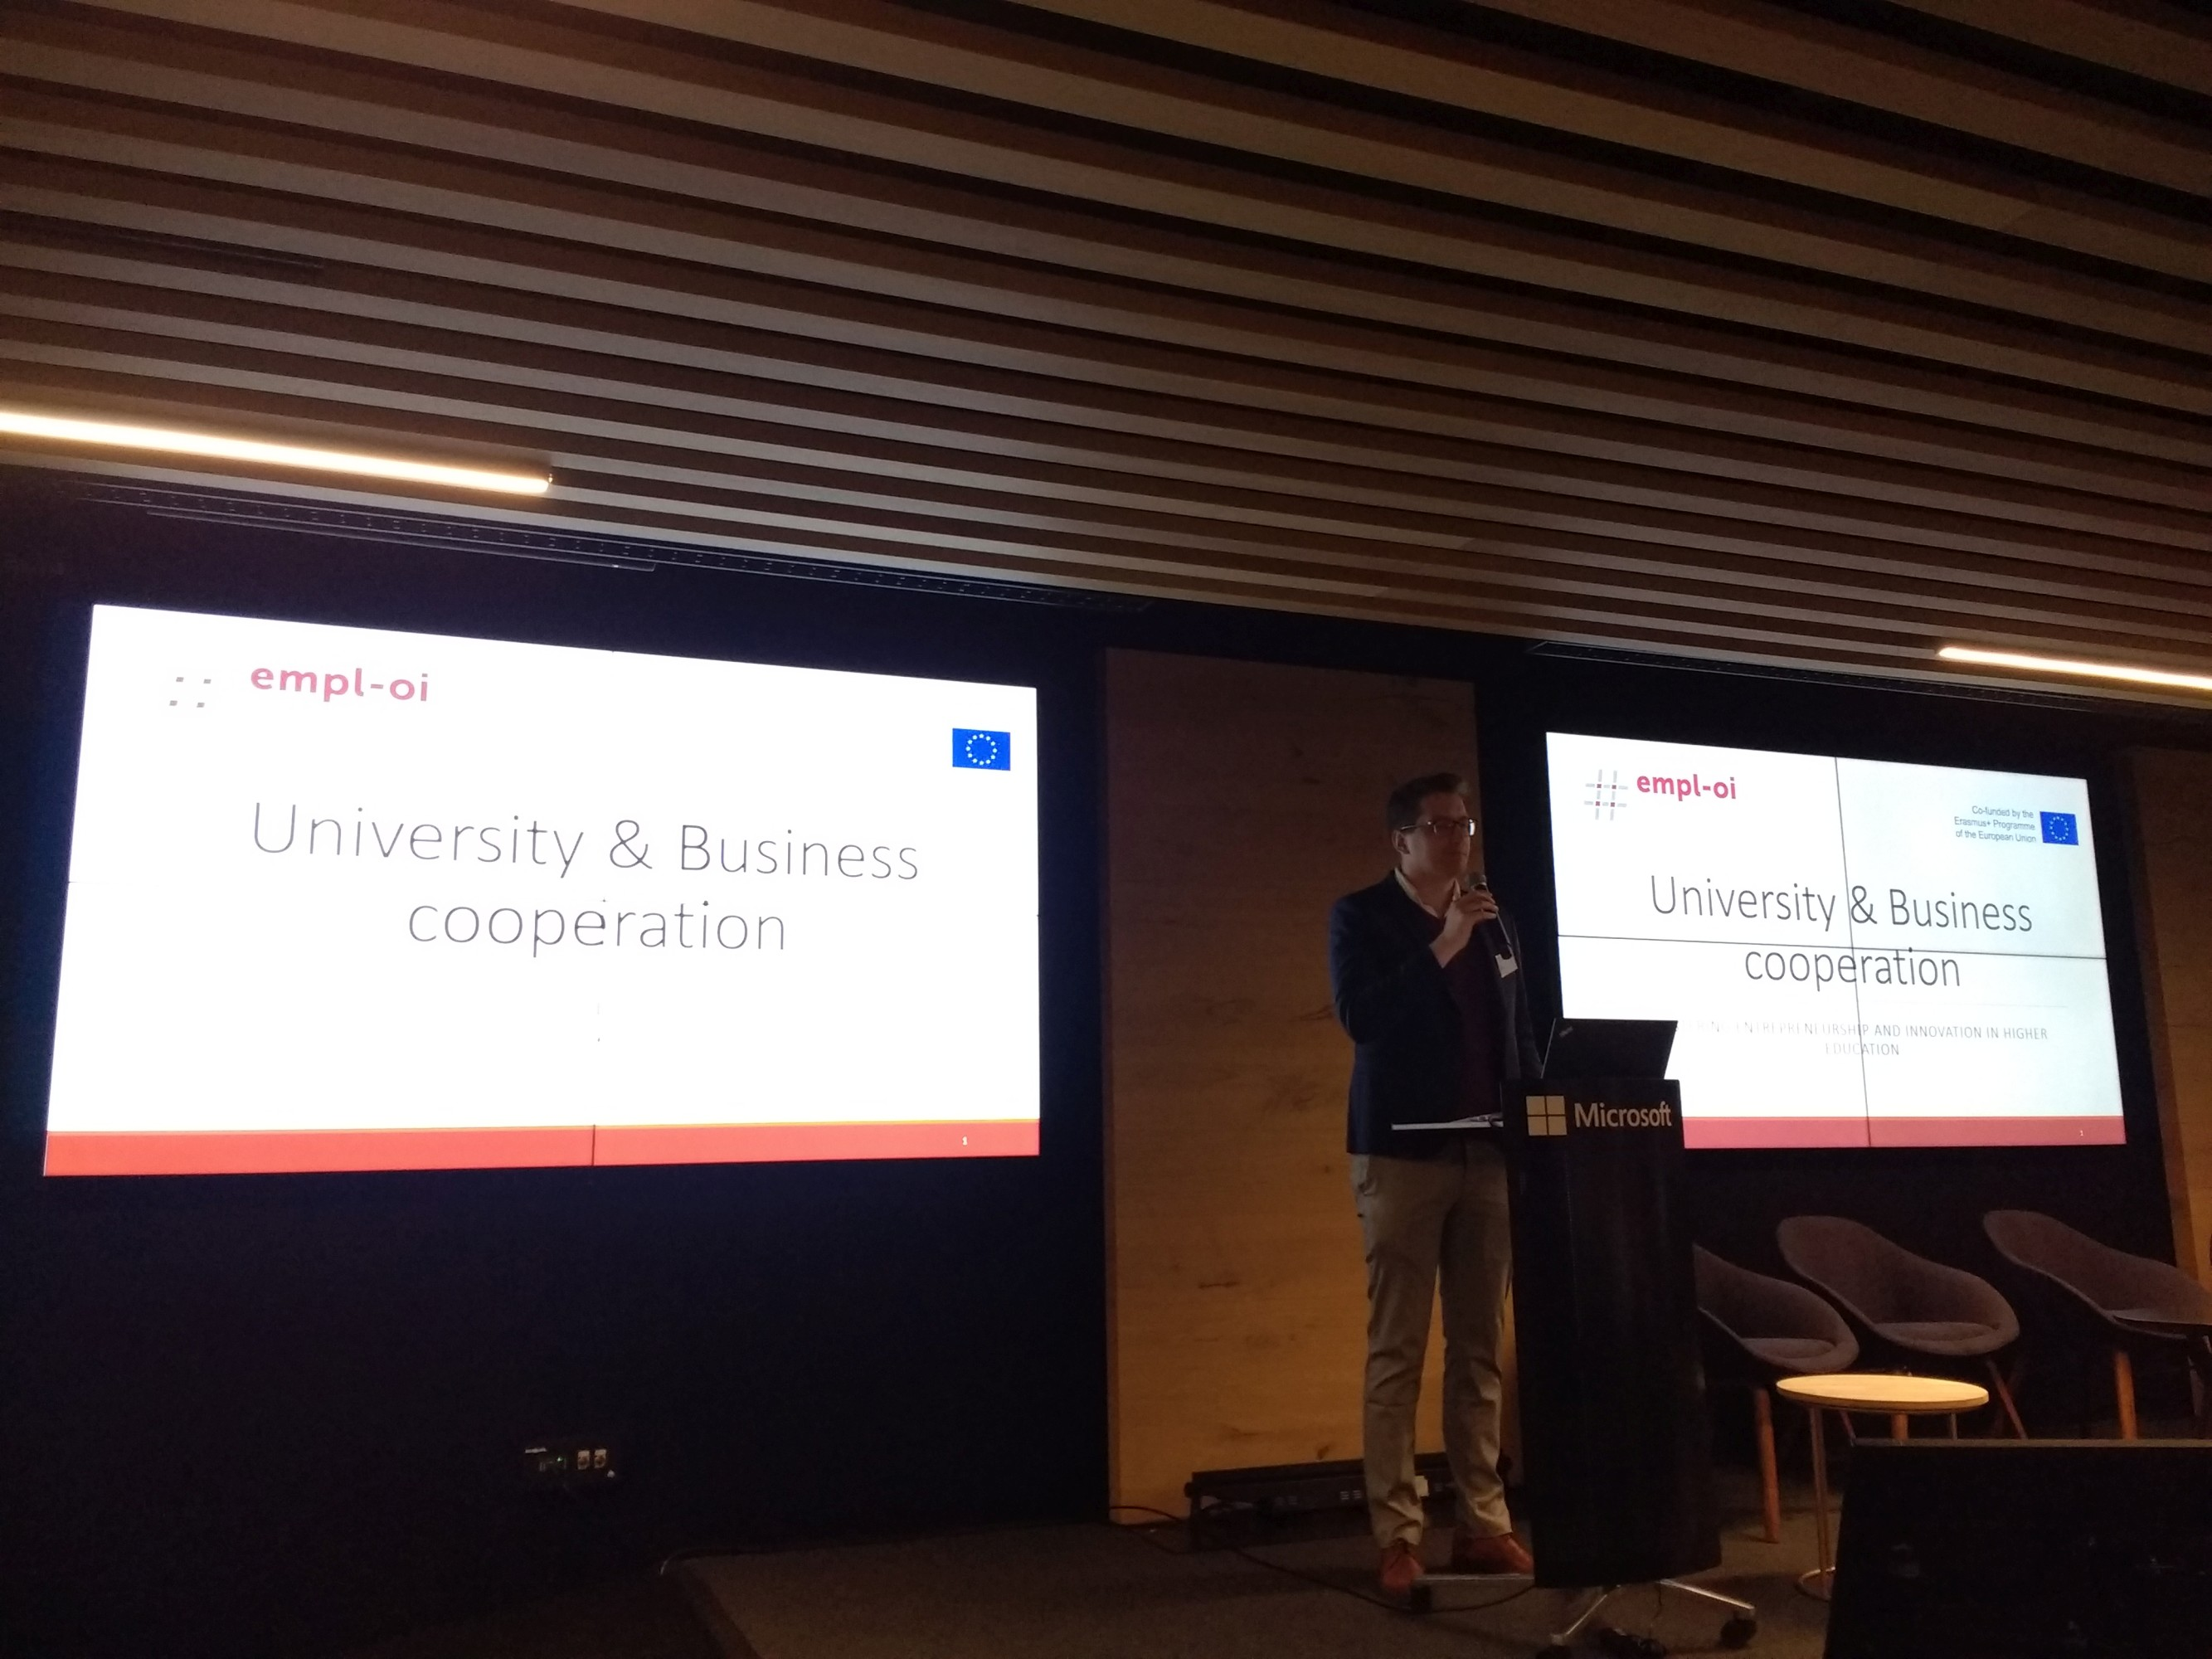 University and Business Cooperation (by YouthProAktiv)